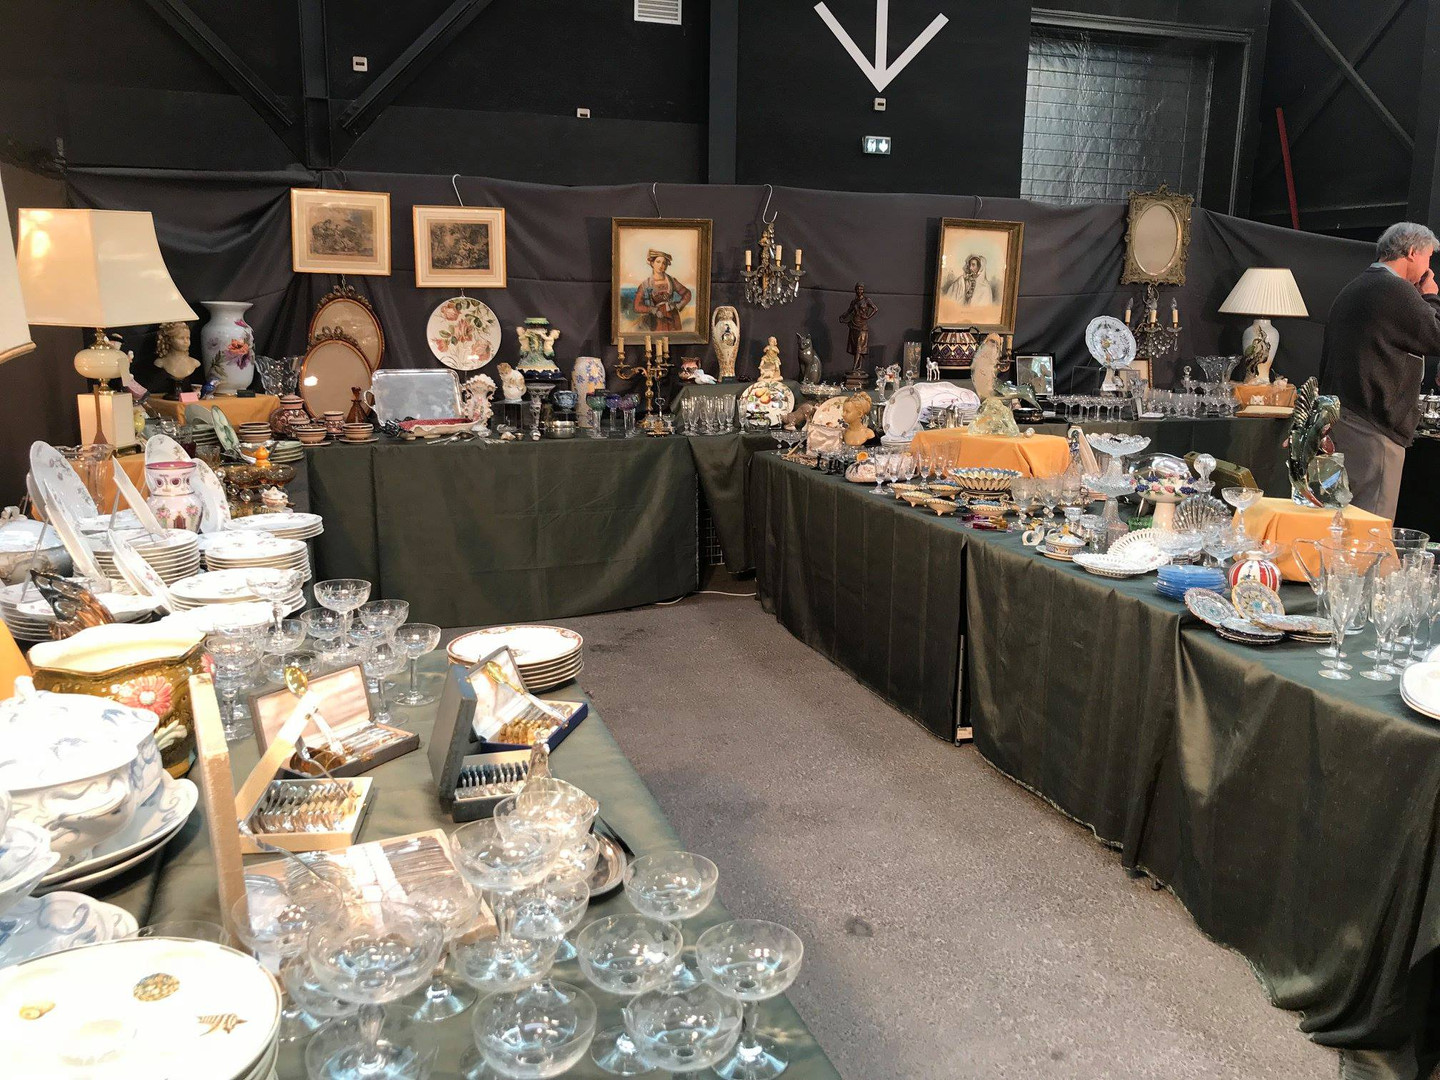 Salon_des_antiquaires_clermont_ferrand_2